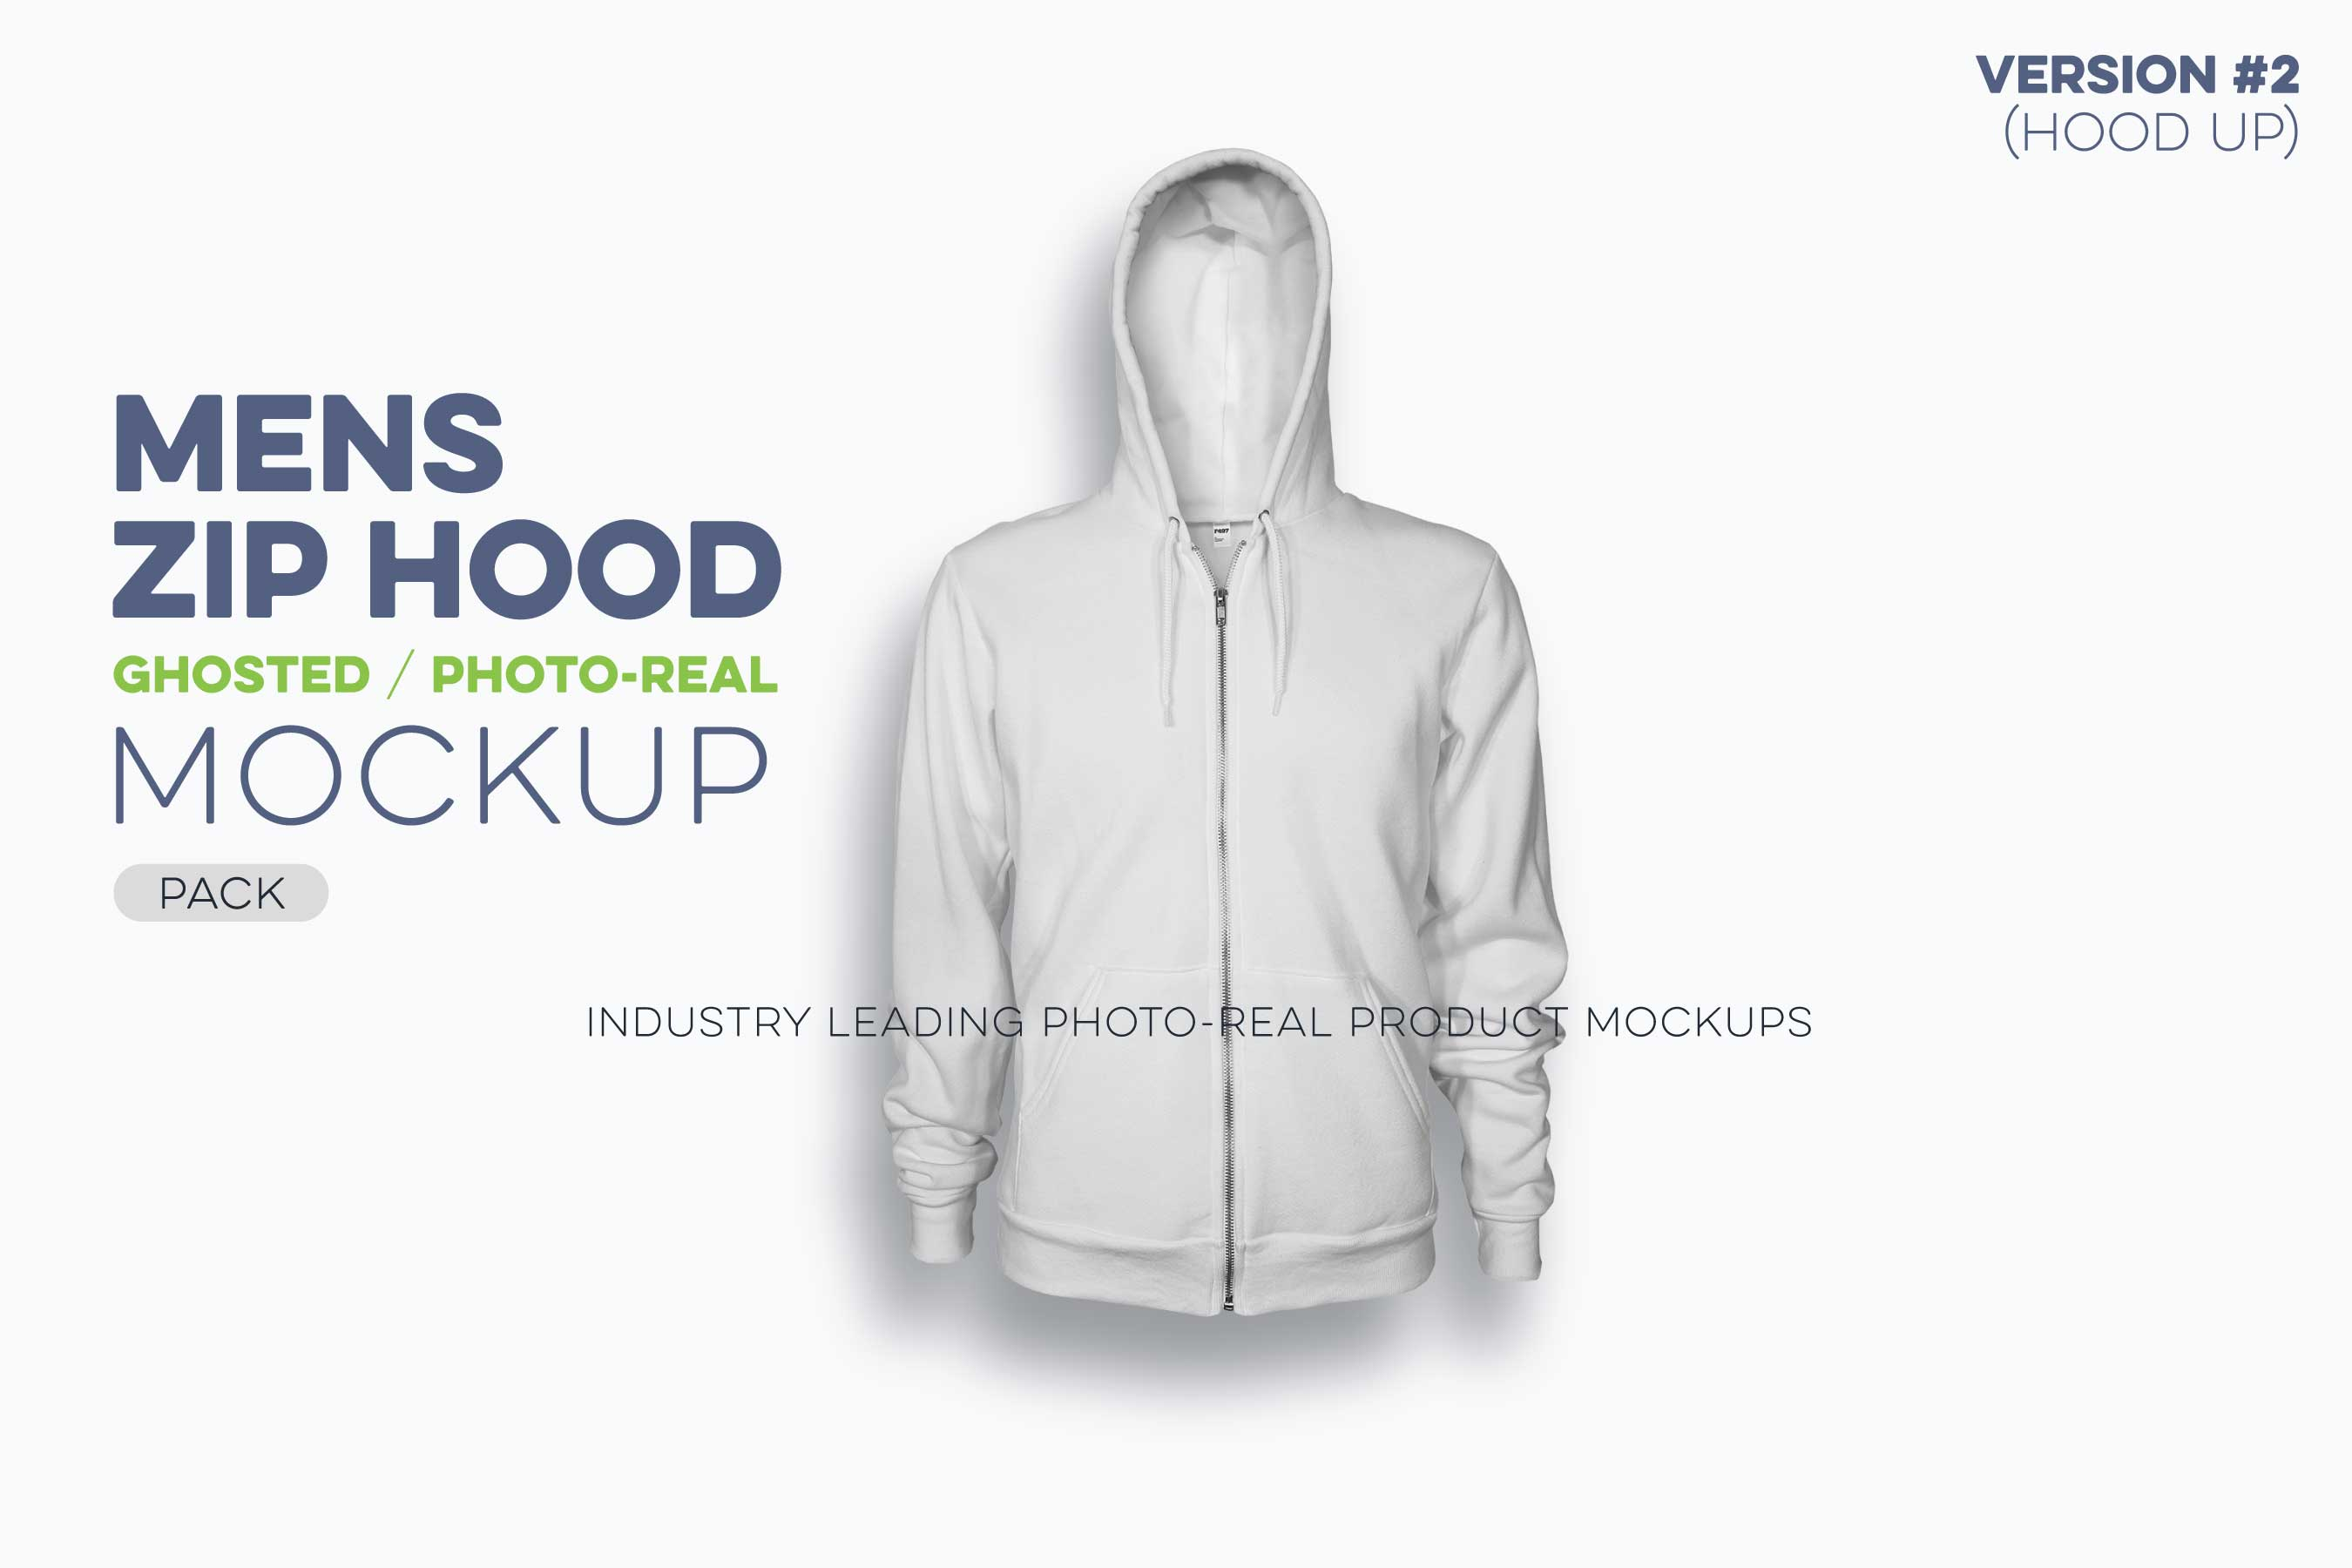 mens ghosted zip hood mockups version 2 hoodie N